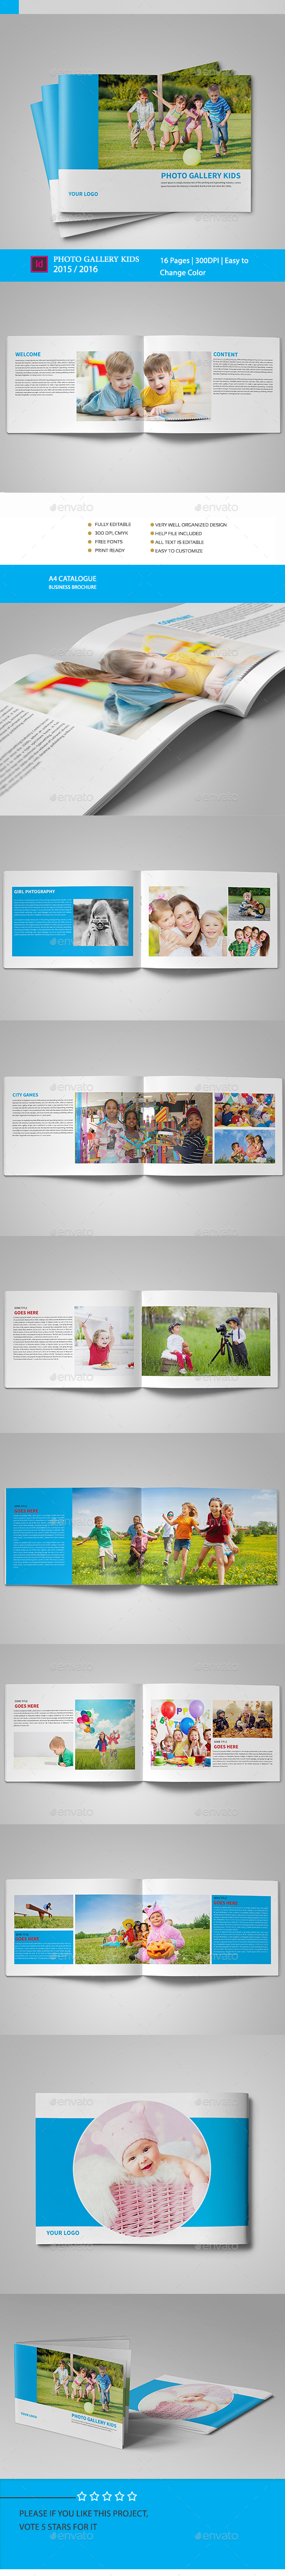 Photo Gallery Children Brochure - Catalogs Brochures